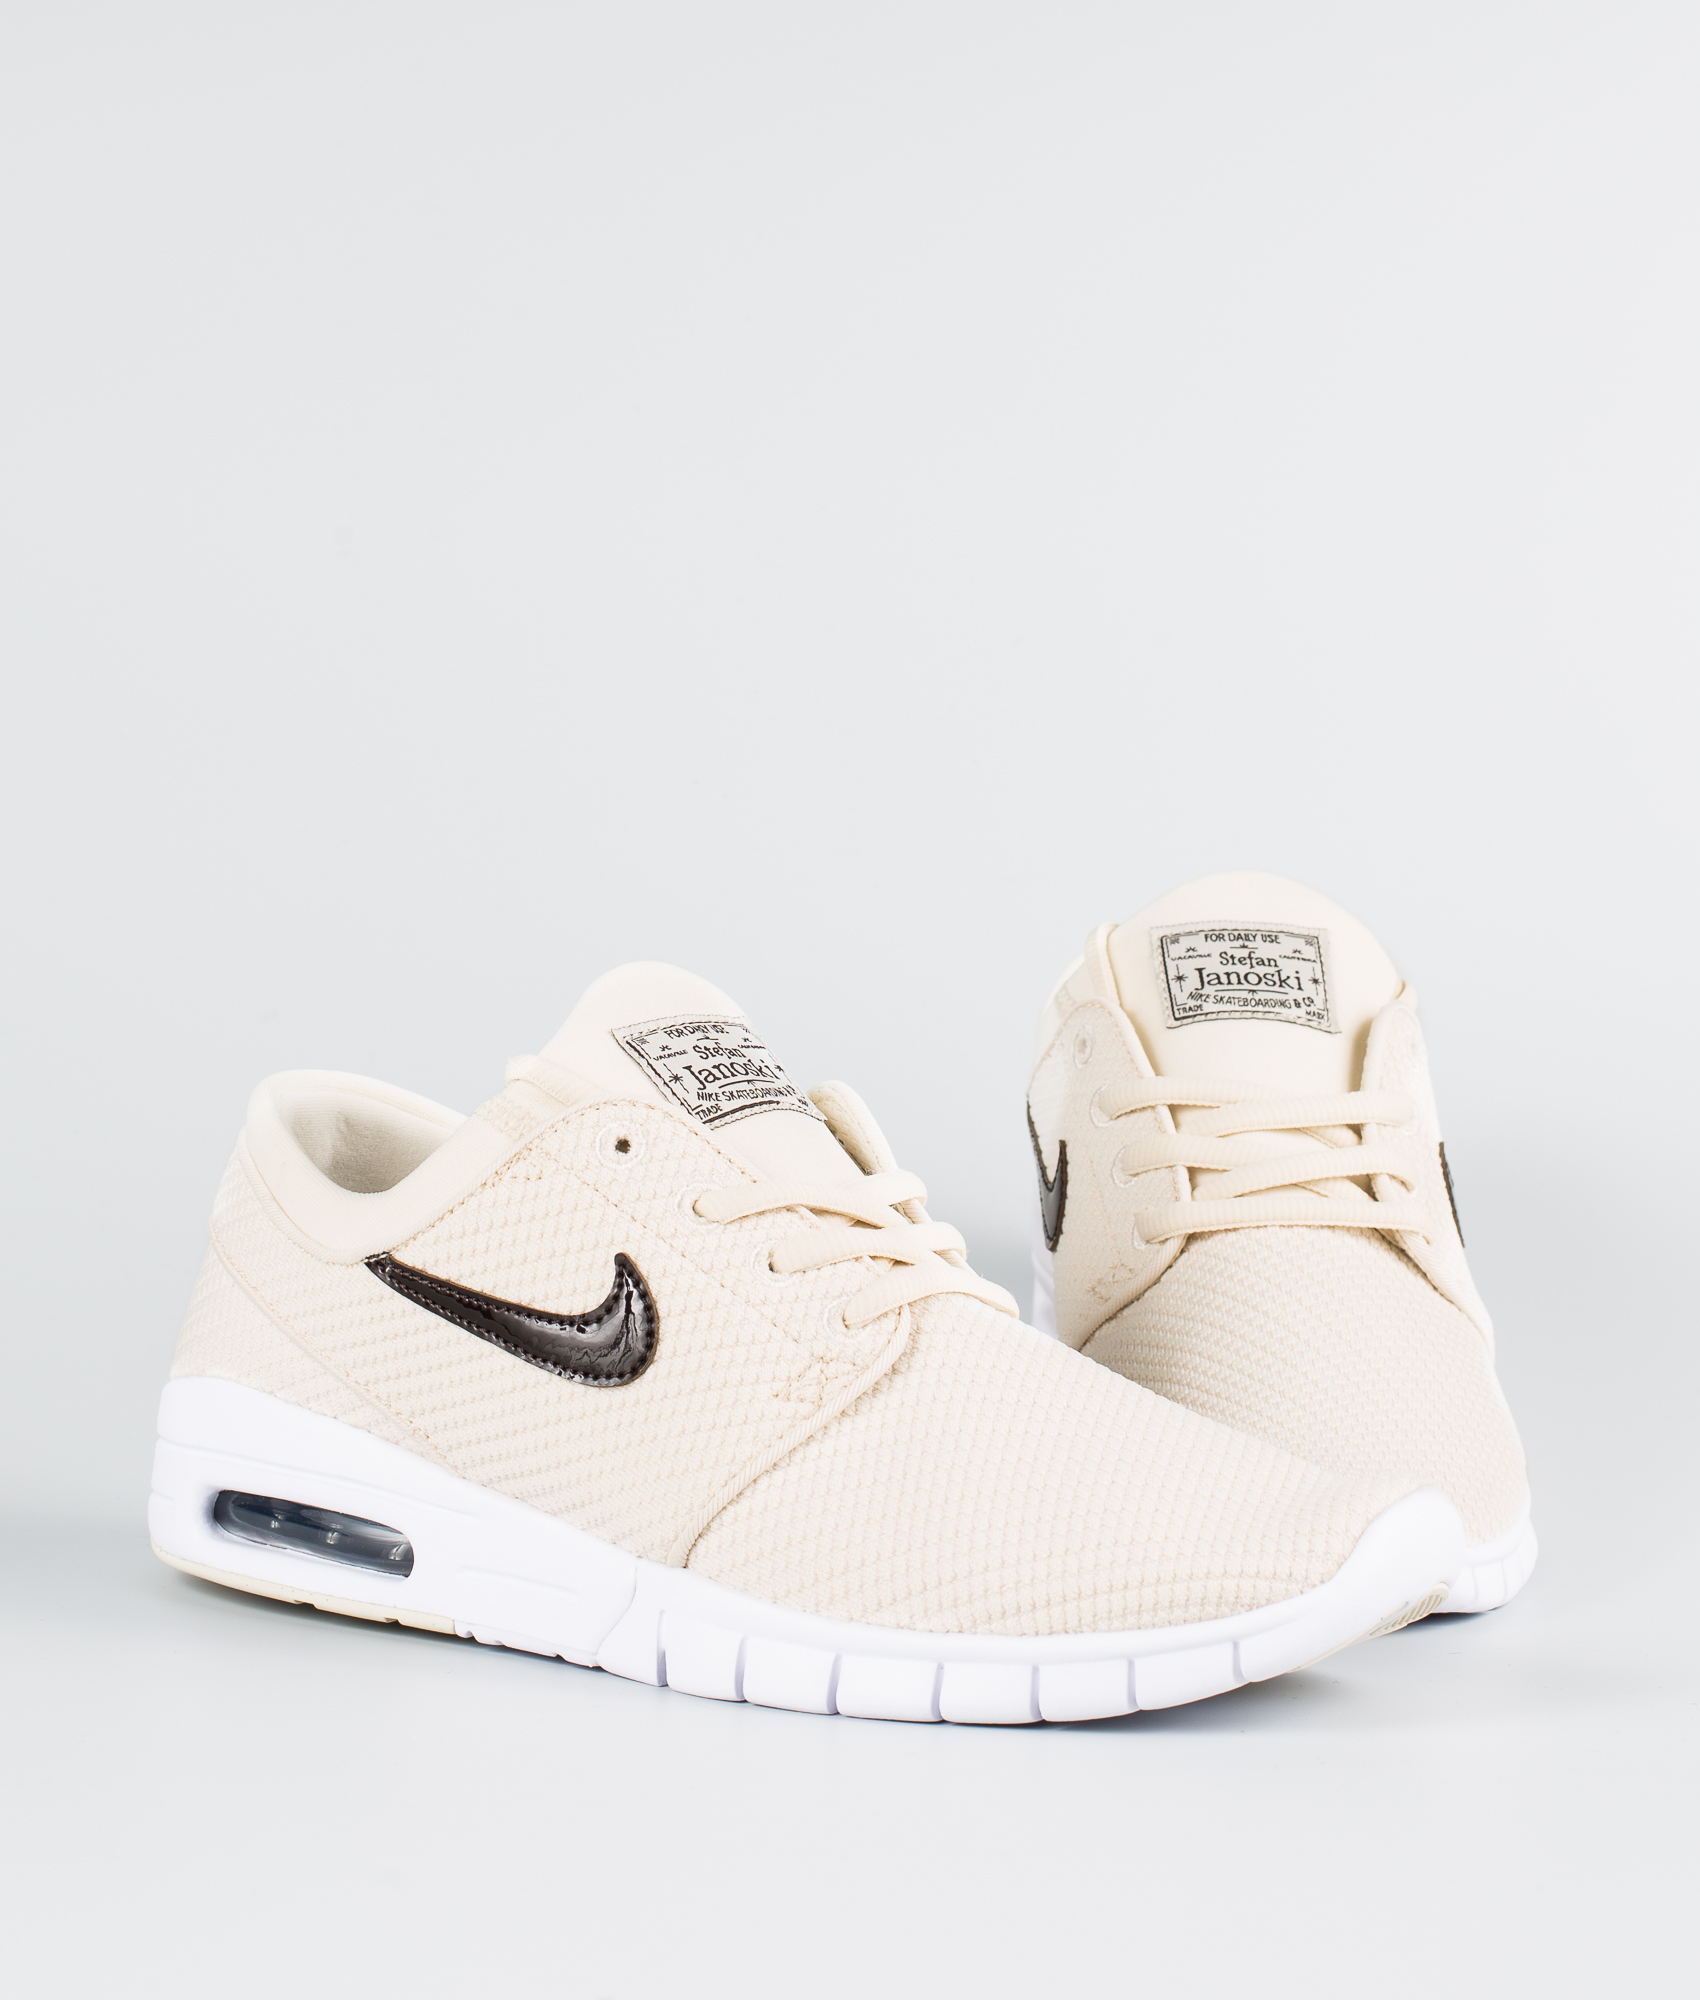 Nike Stefan Janoski Max Chaussures Light CreamVelvet Brown White